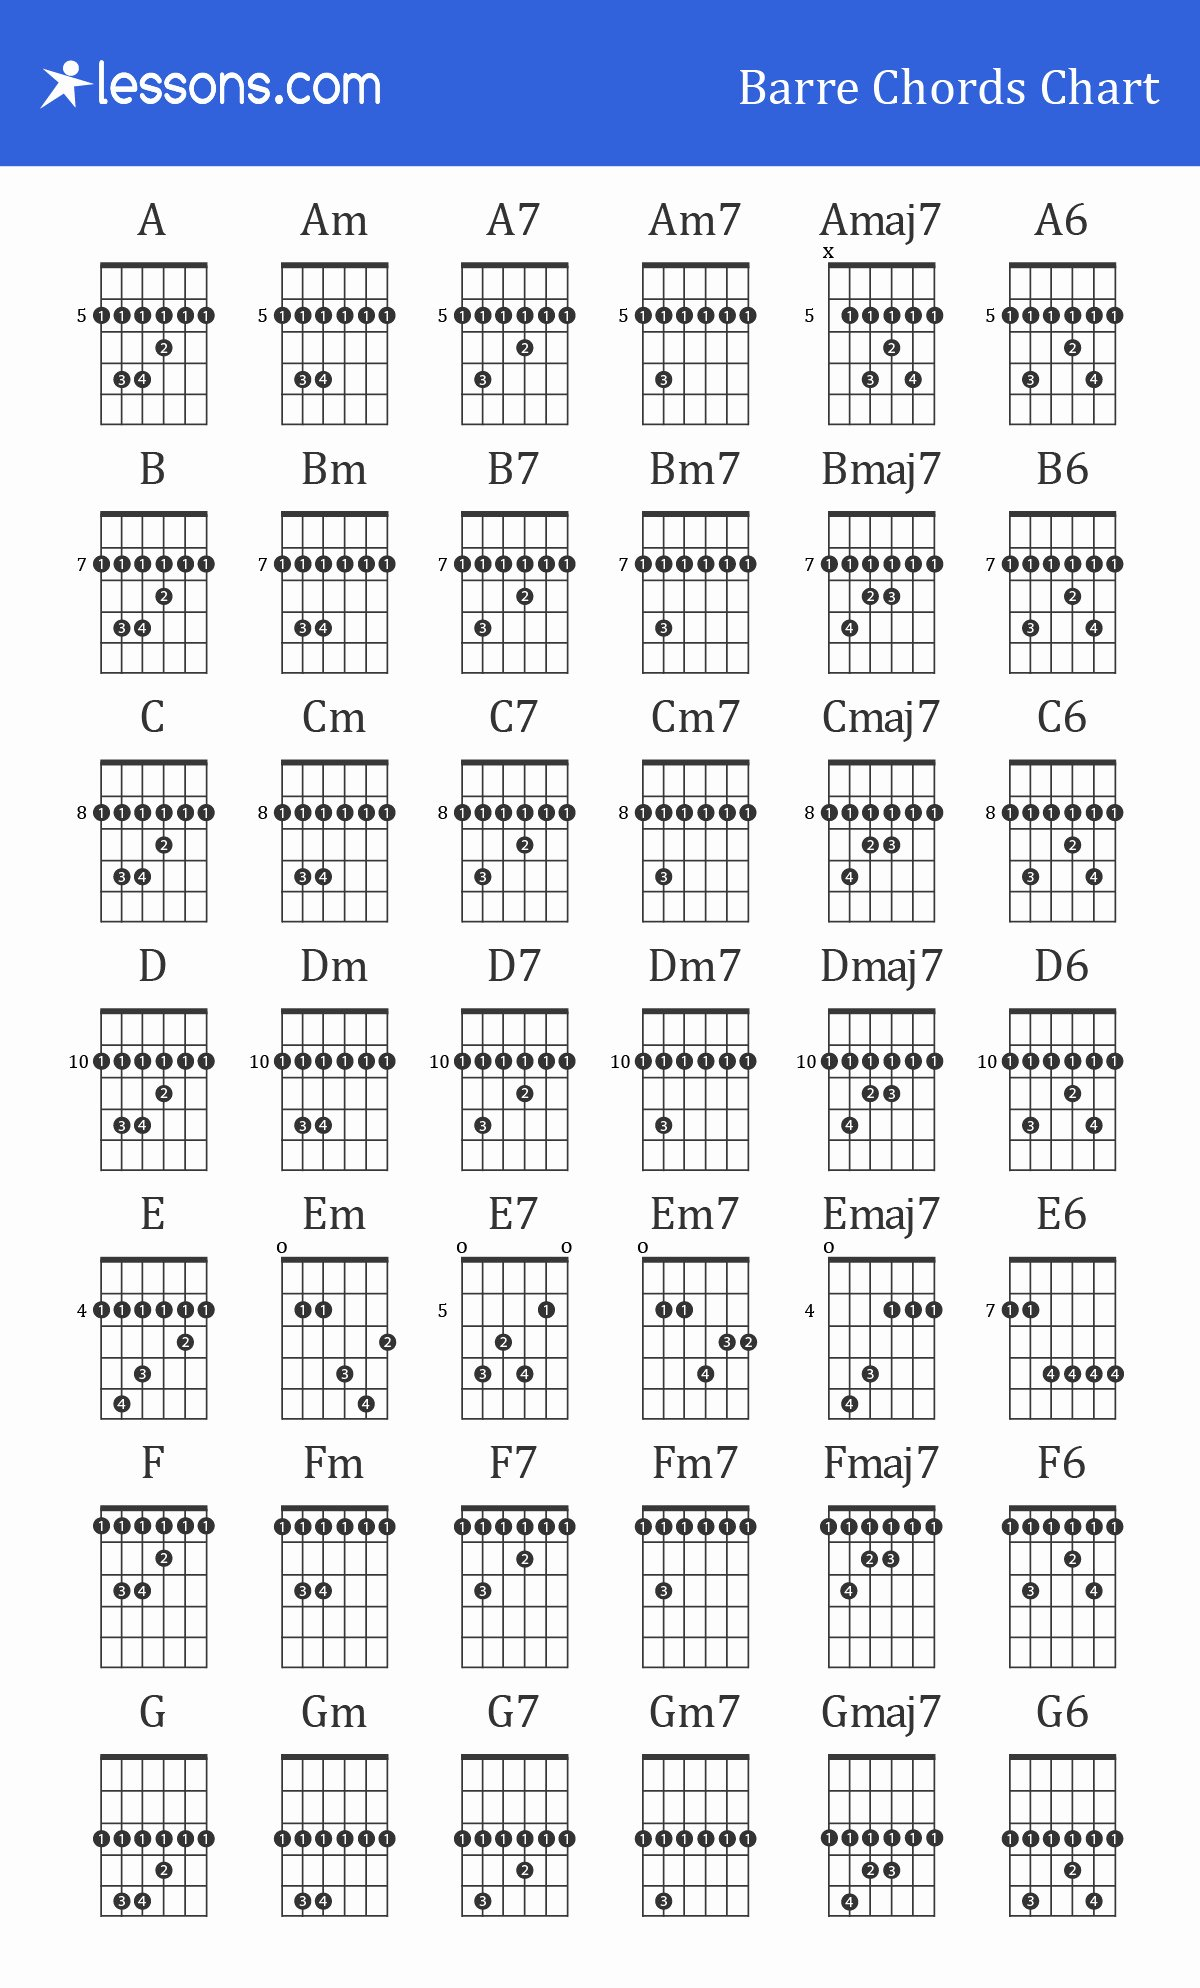 Barre Chords Guitar Chart Awesome Guitar Barre Chords for Beginners How to Charts & Examples